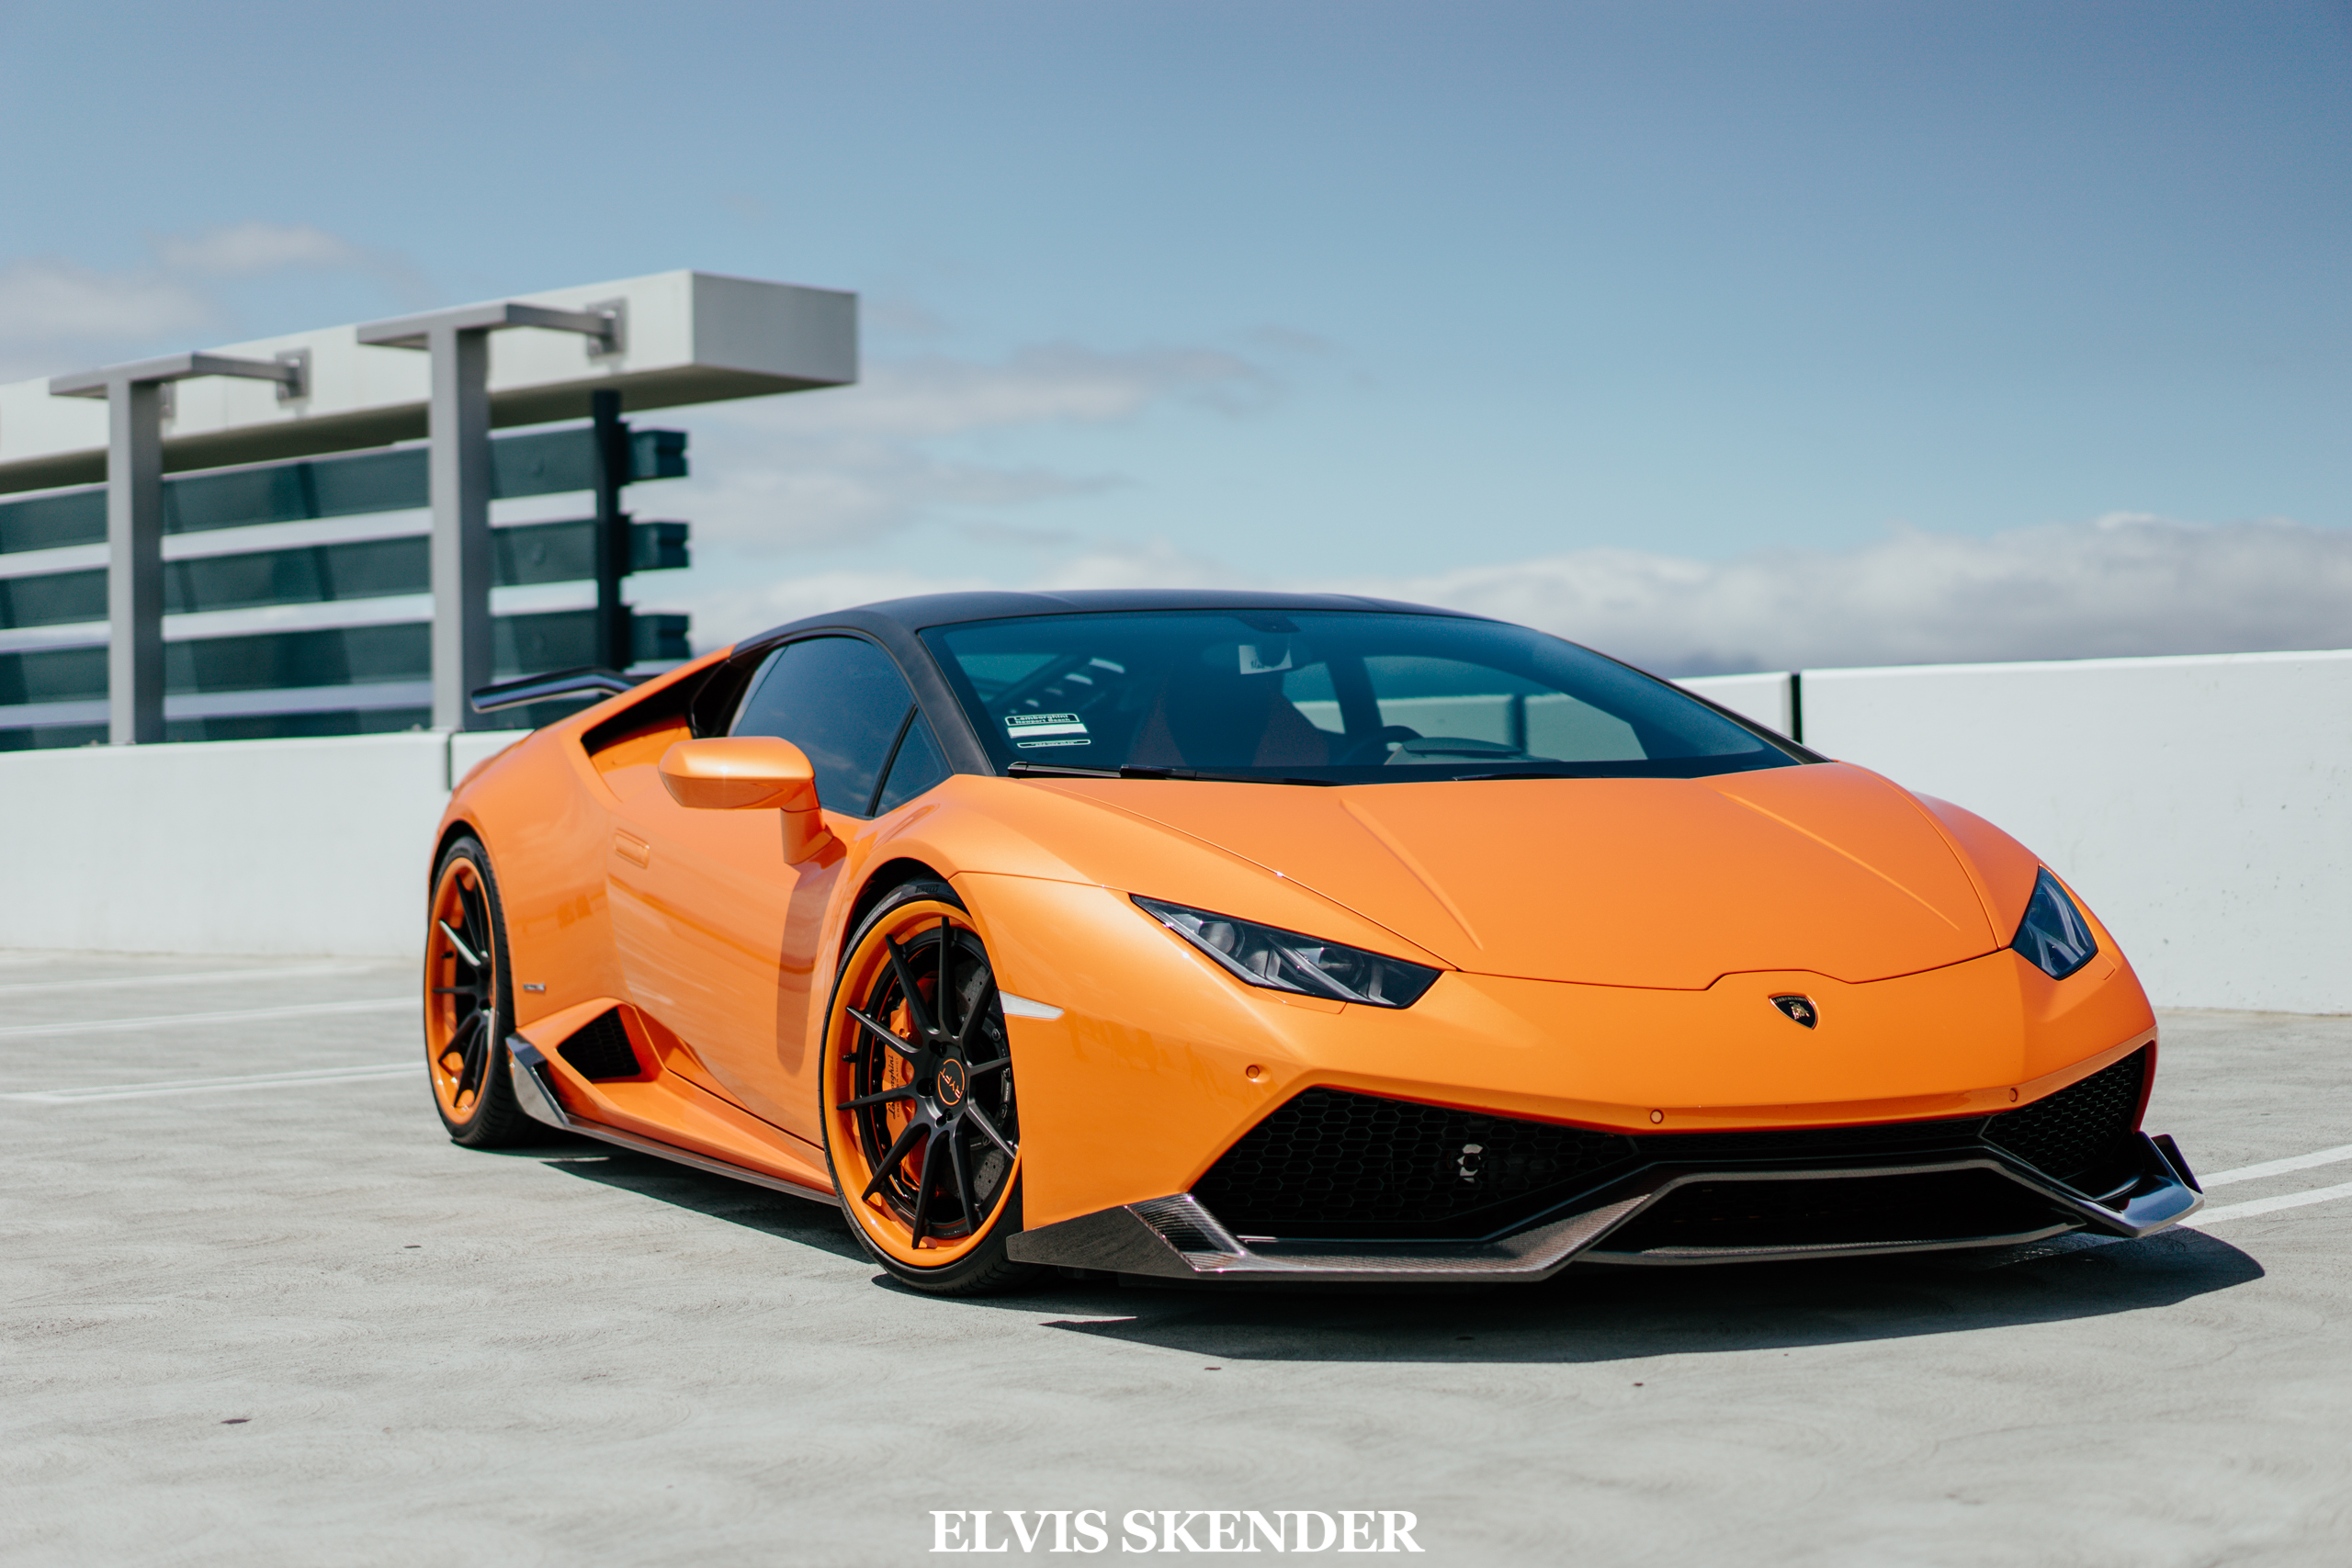 Stunning Orange Lamborghini Huracan By 1016 Industries